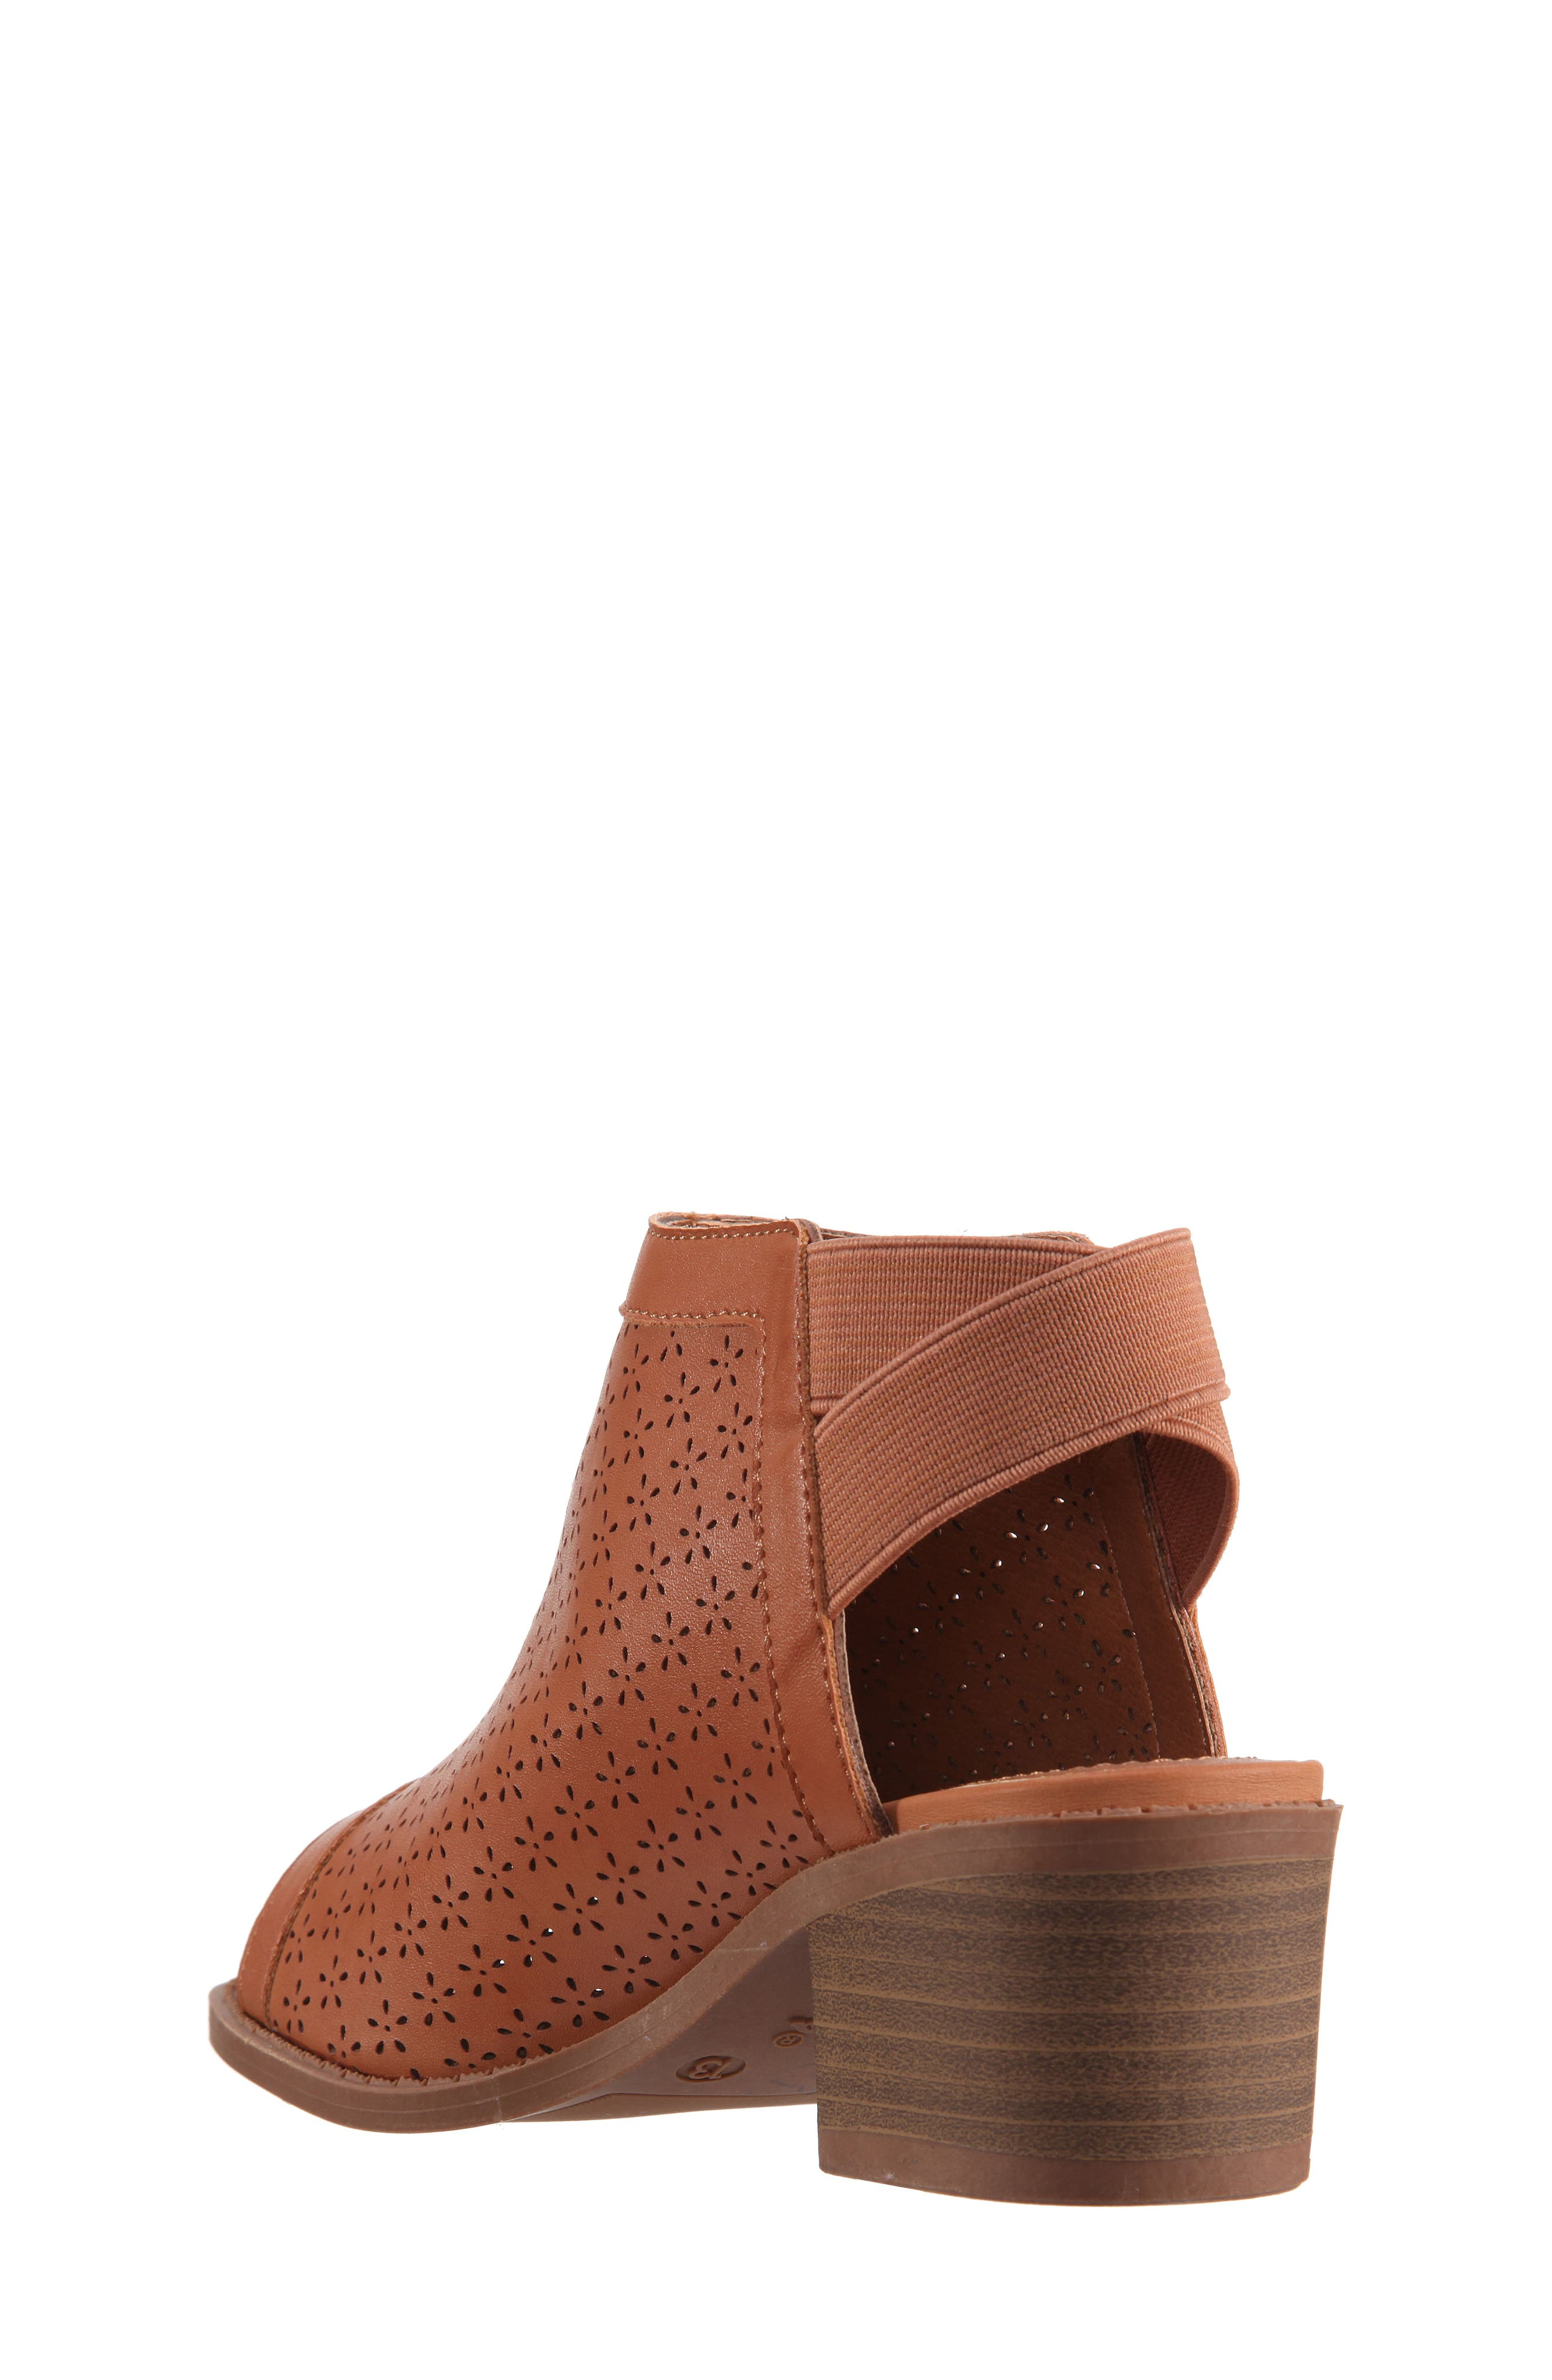 Maya Perforated Peep Toe Bootie,                             Alternate thumbnail 2, color,                             Tan Burnished